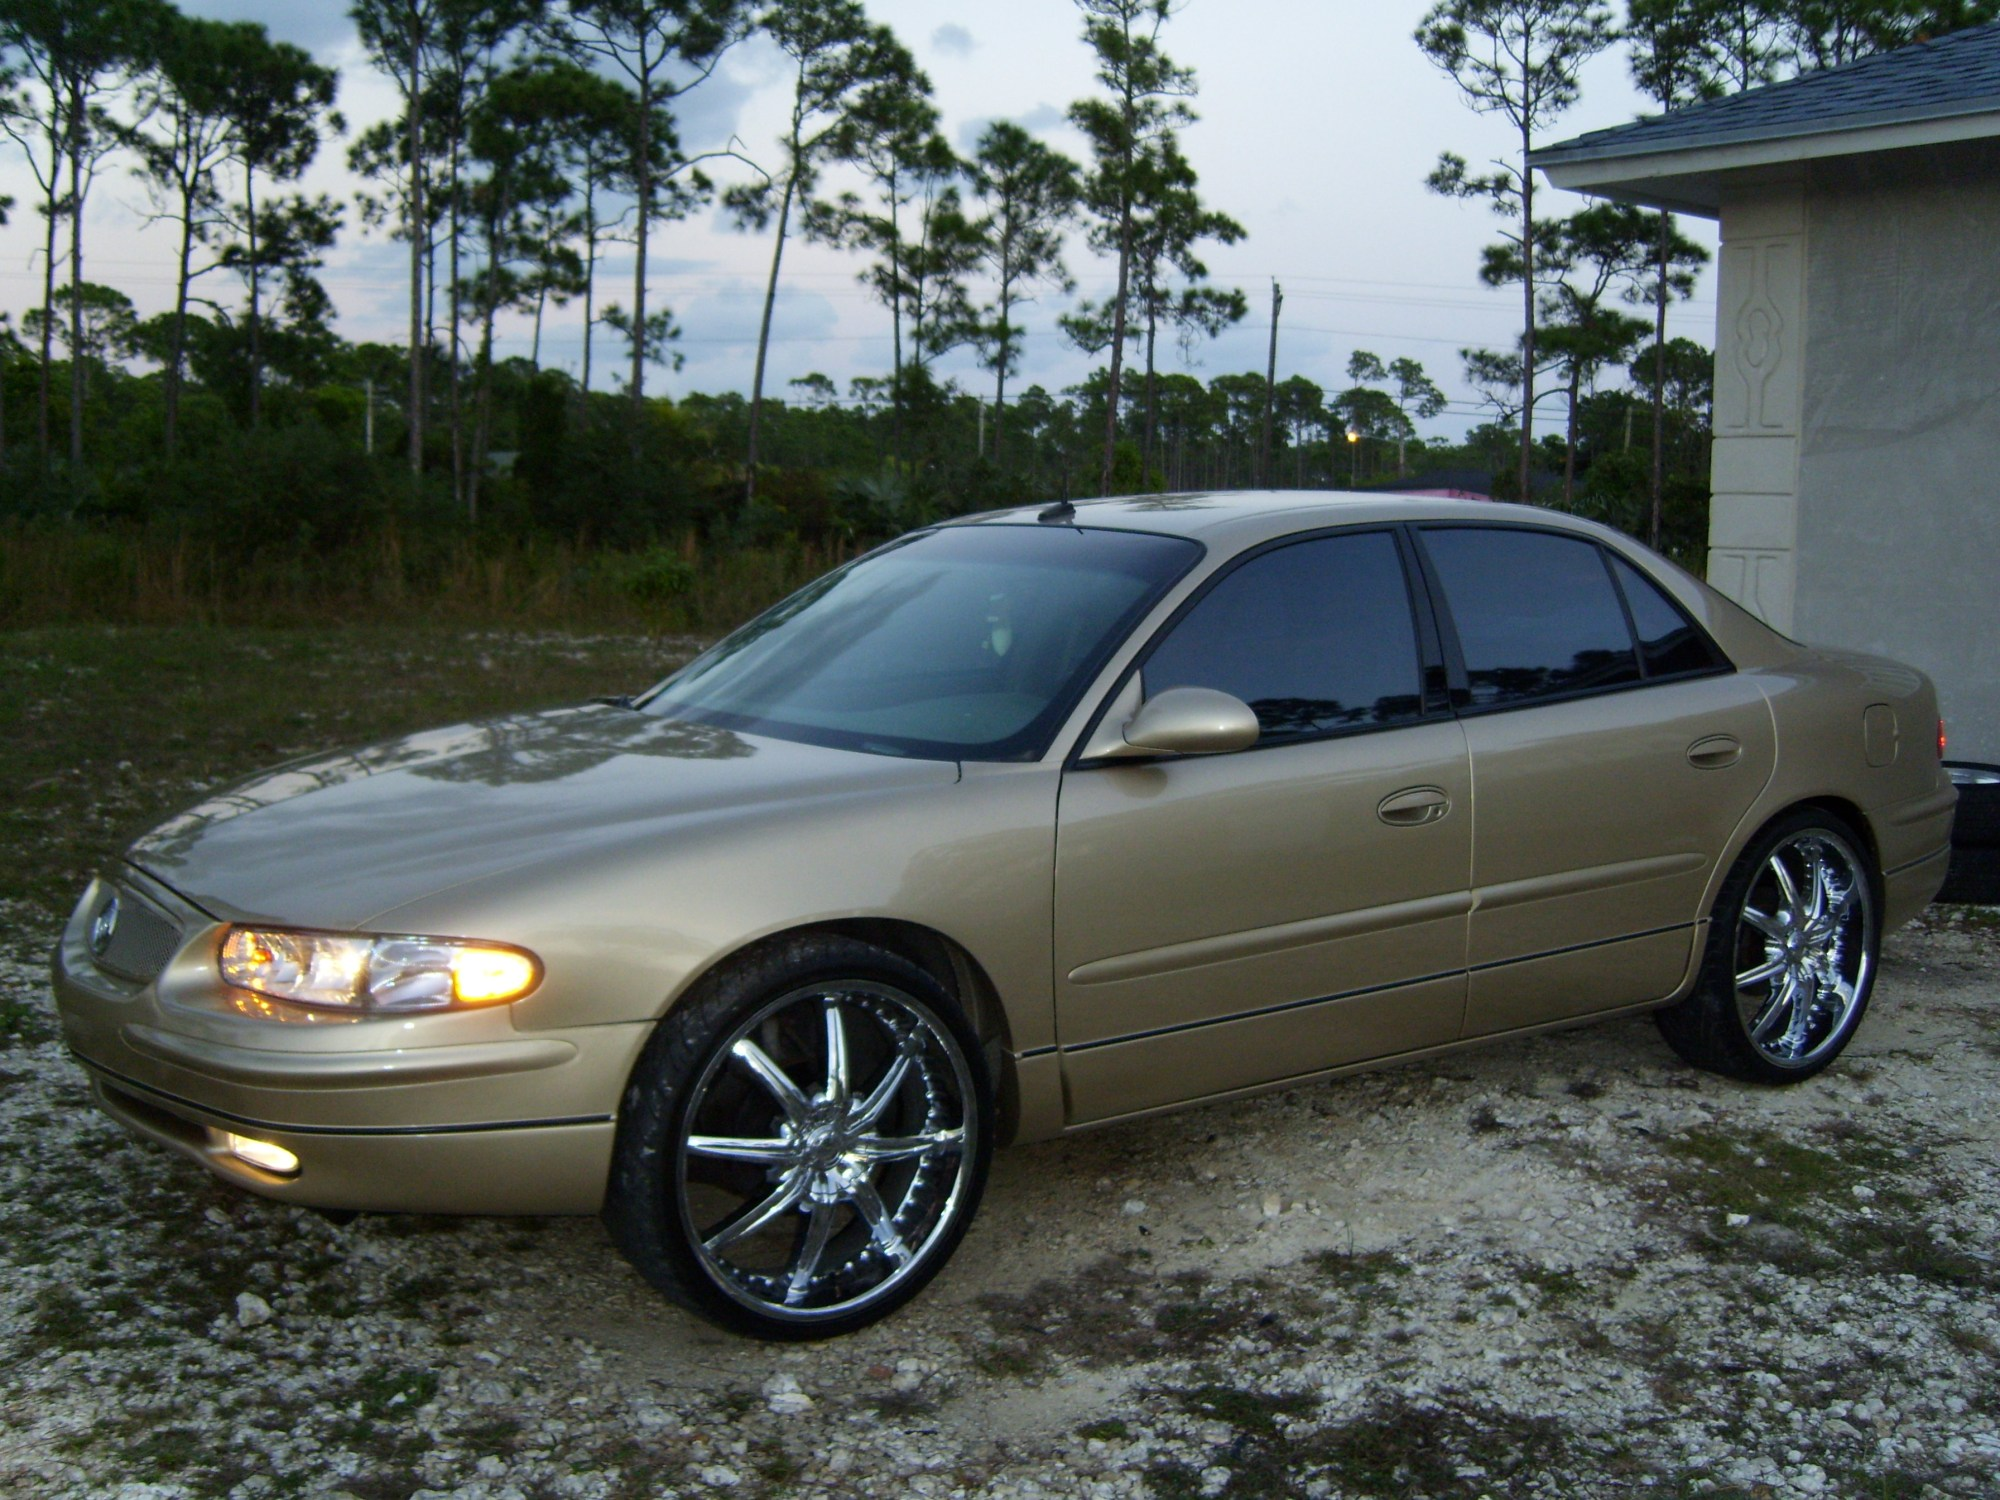 hight resolution of another ricofreeportboy 2004 buick regal post 14865686